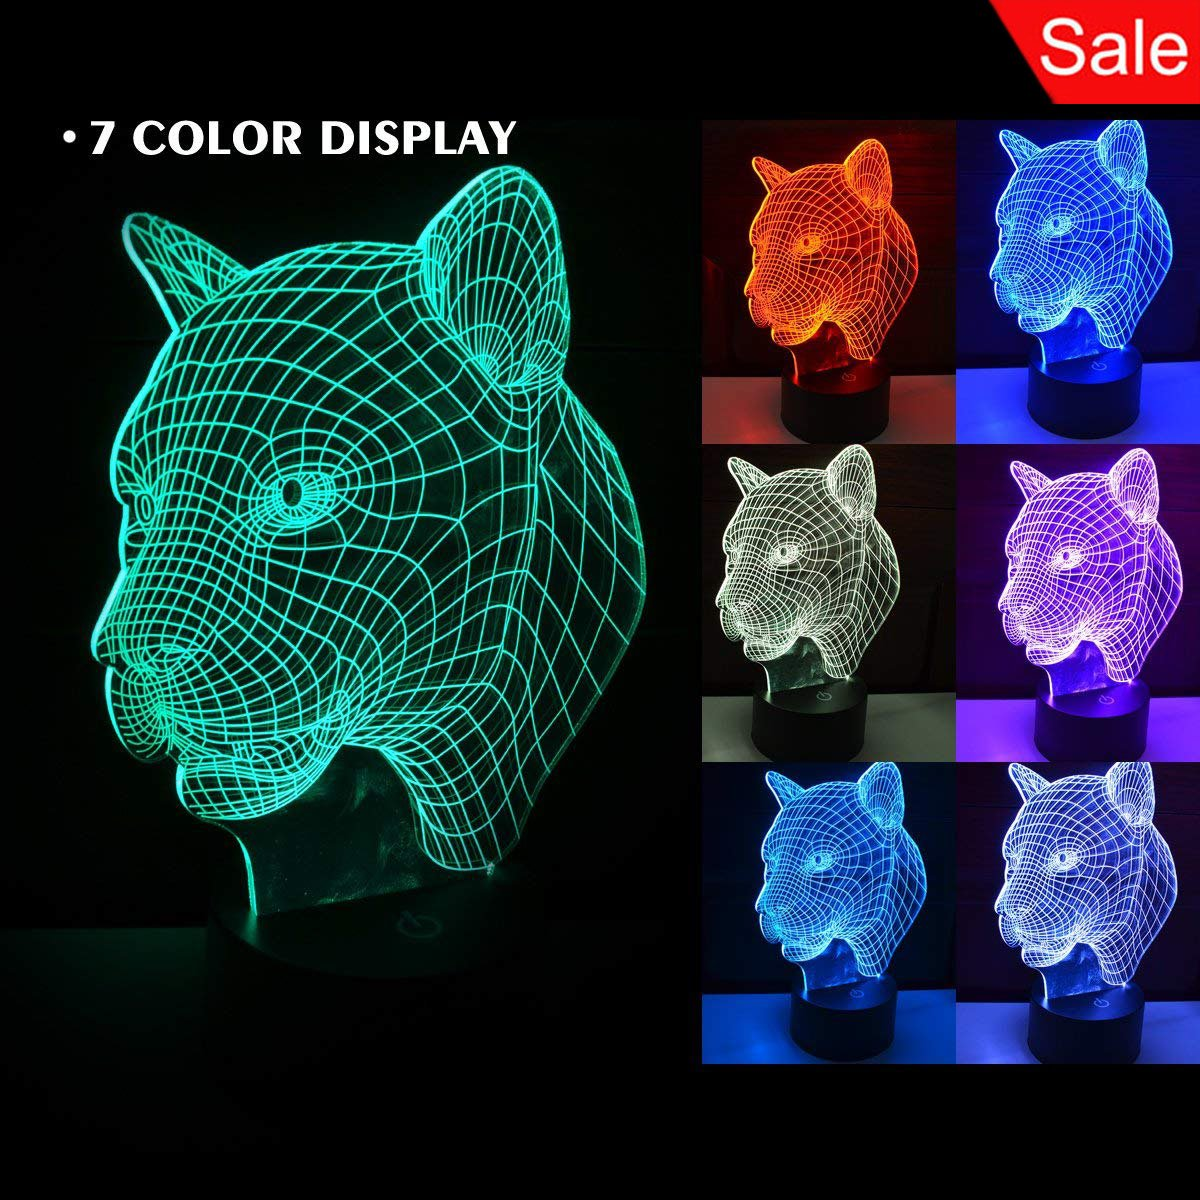 3D Leopard Touch Table Lamp, 7 Color Changing Desk Table Night Light Lamp for Children Bedroom Home Decoration Halloween Christmas Gift